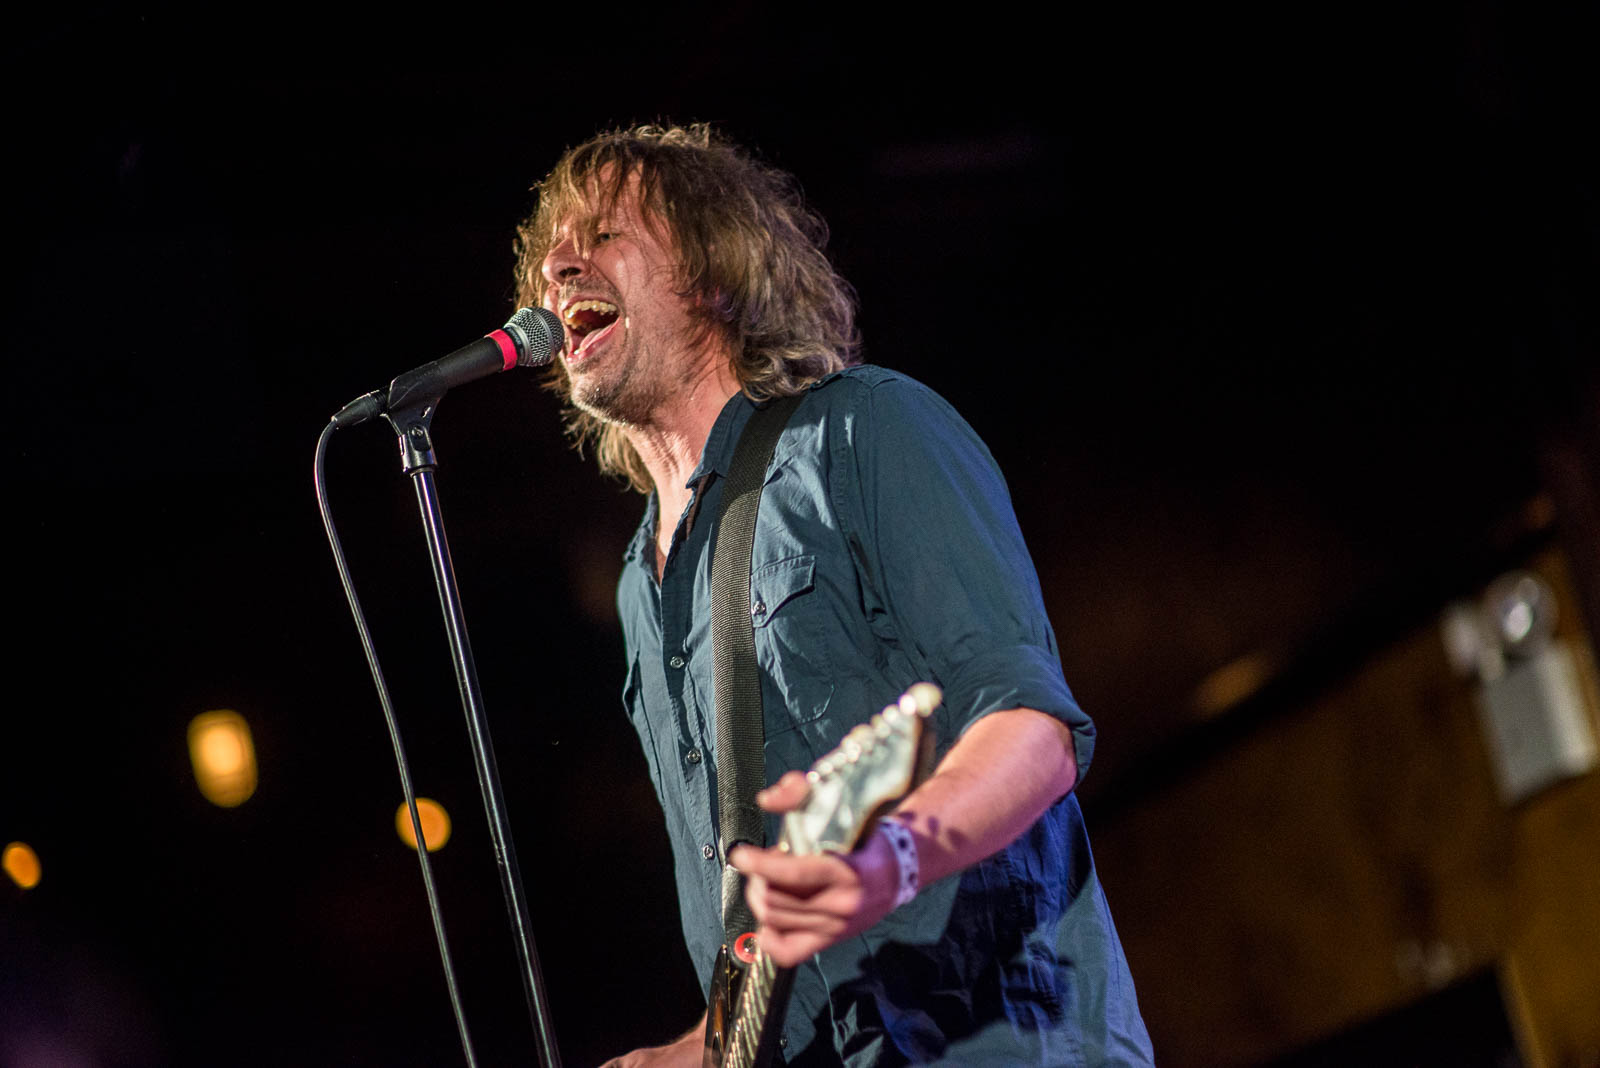 Hot Snakes at The Bell House on November 16, 2017.